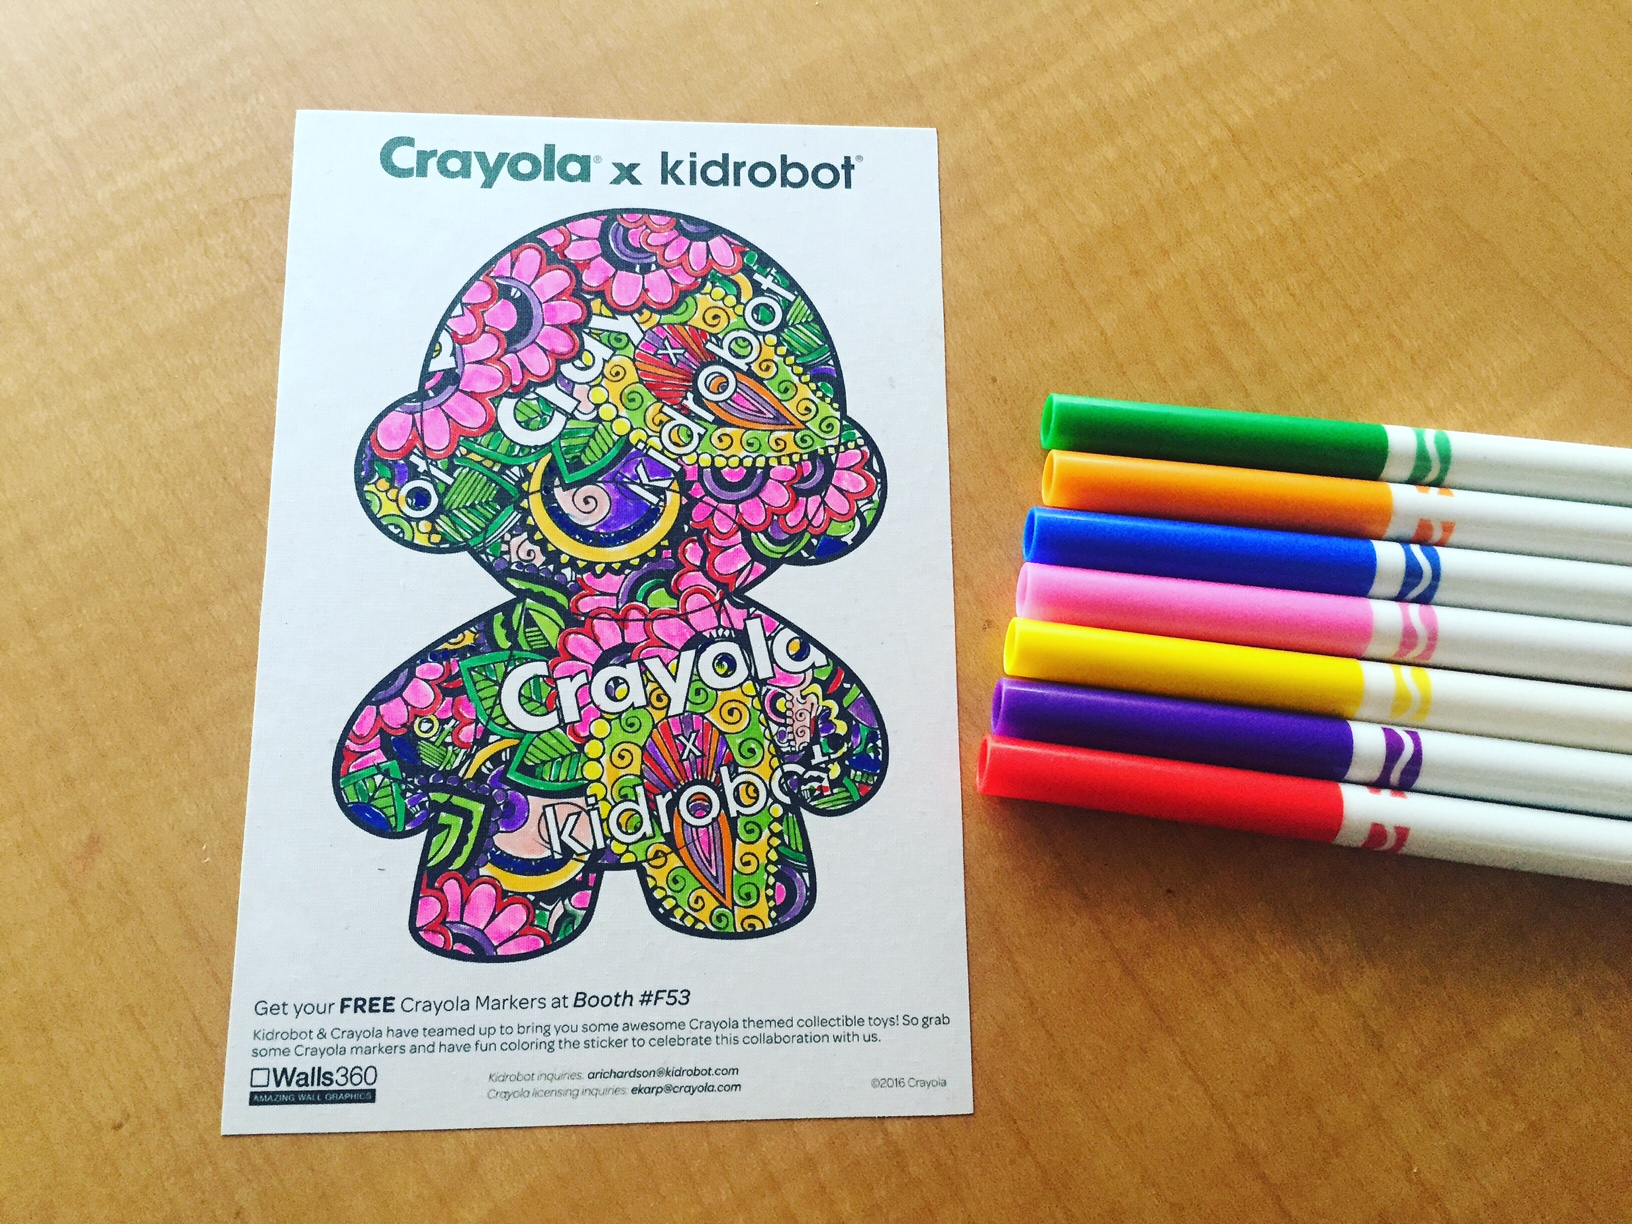 Walls360 custom COLORING wall graphics for Crayola x Kidrobot at #LicensingExpo16